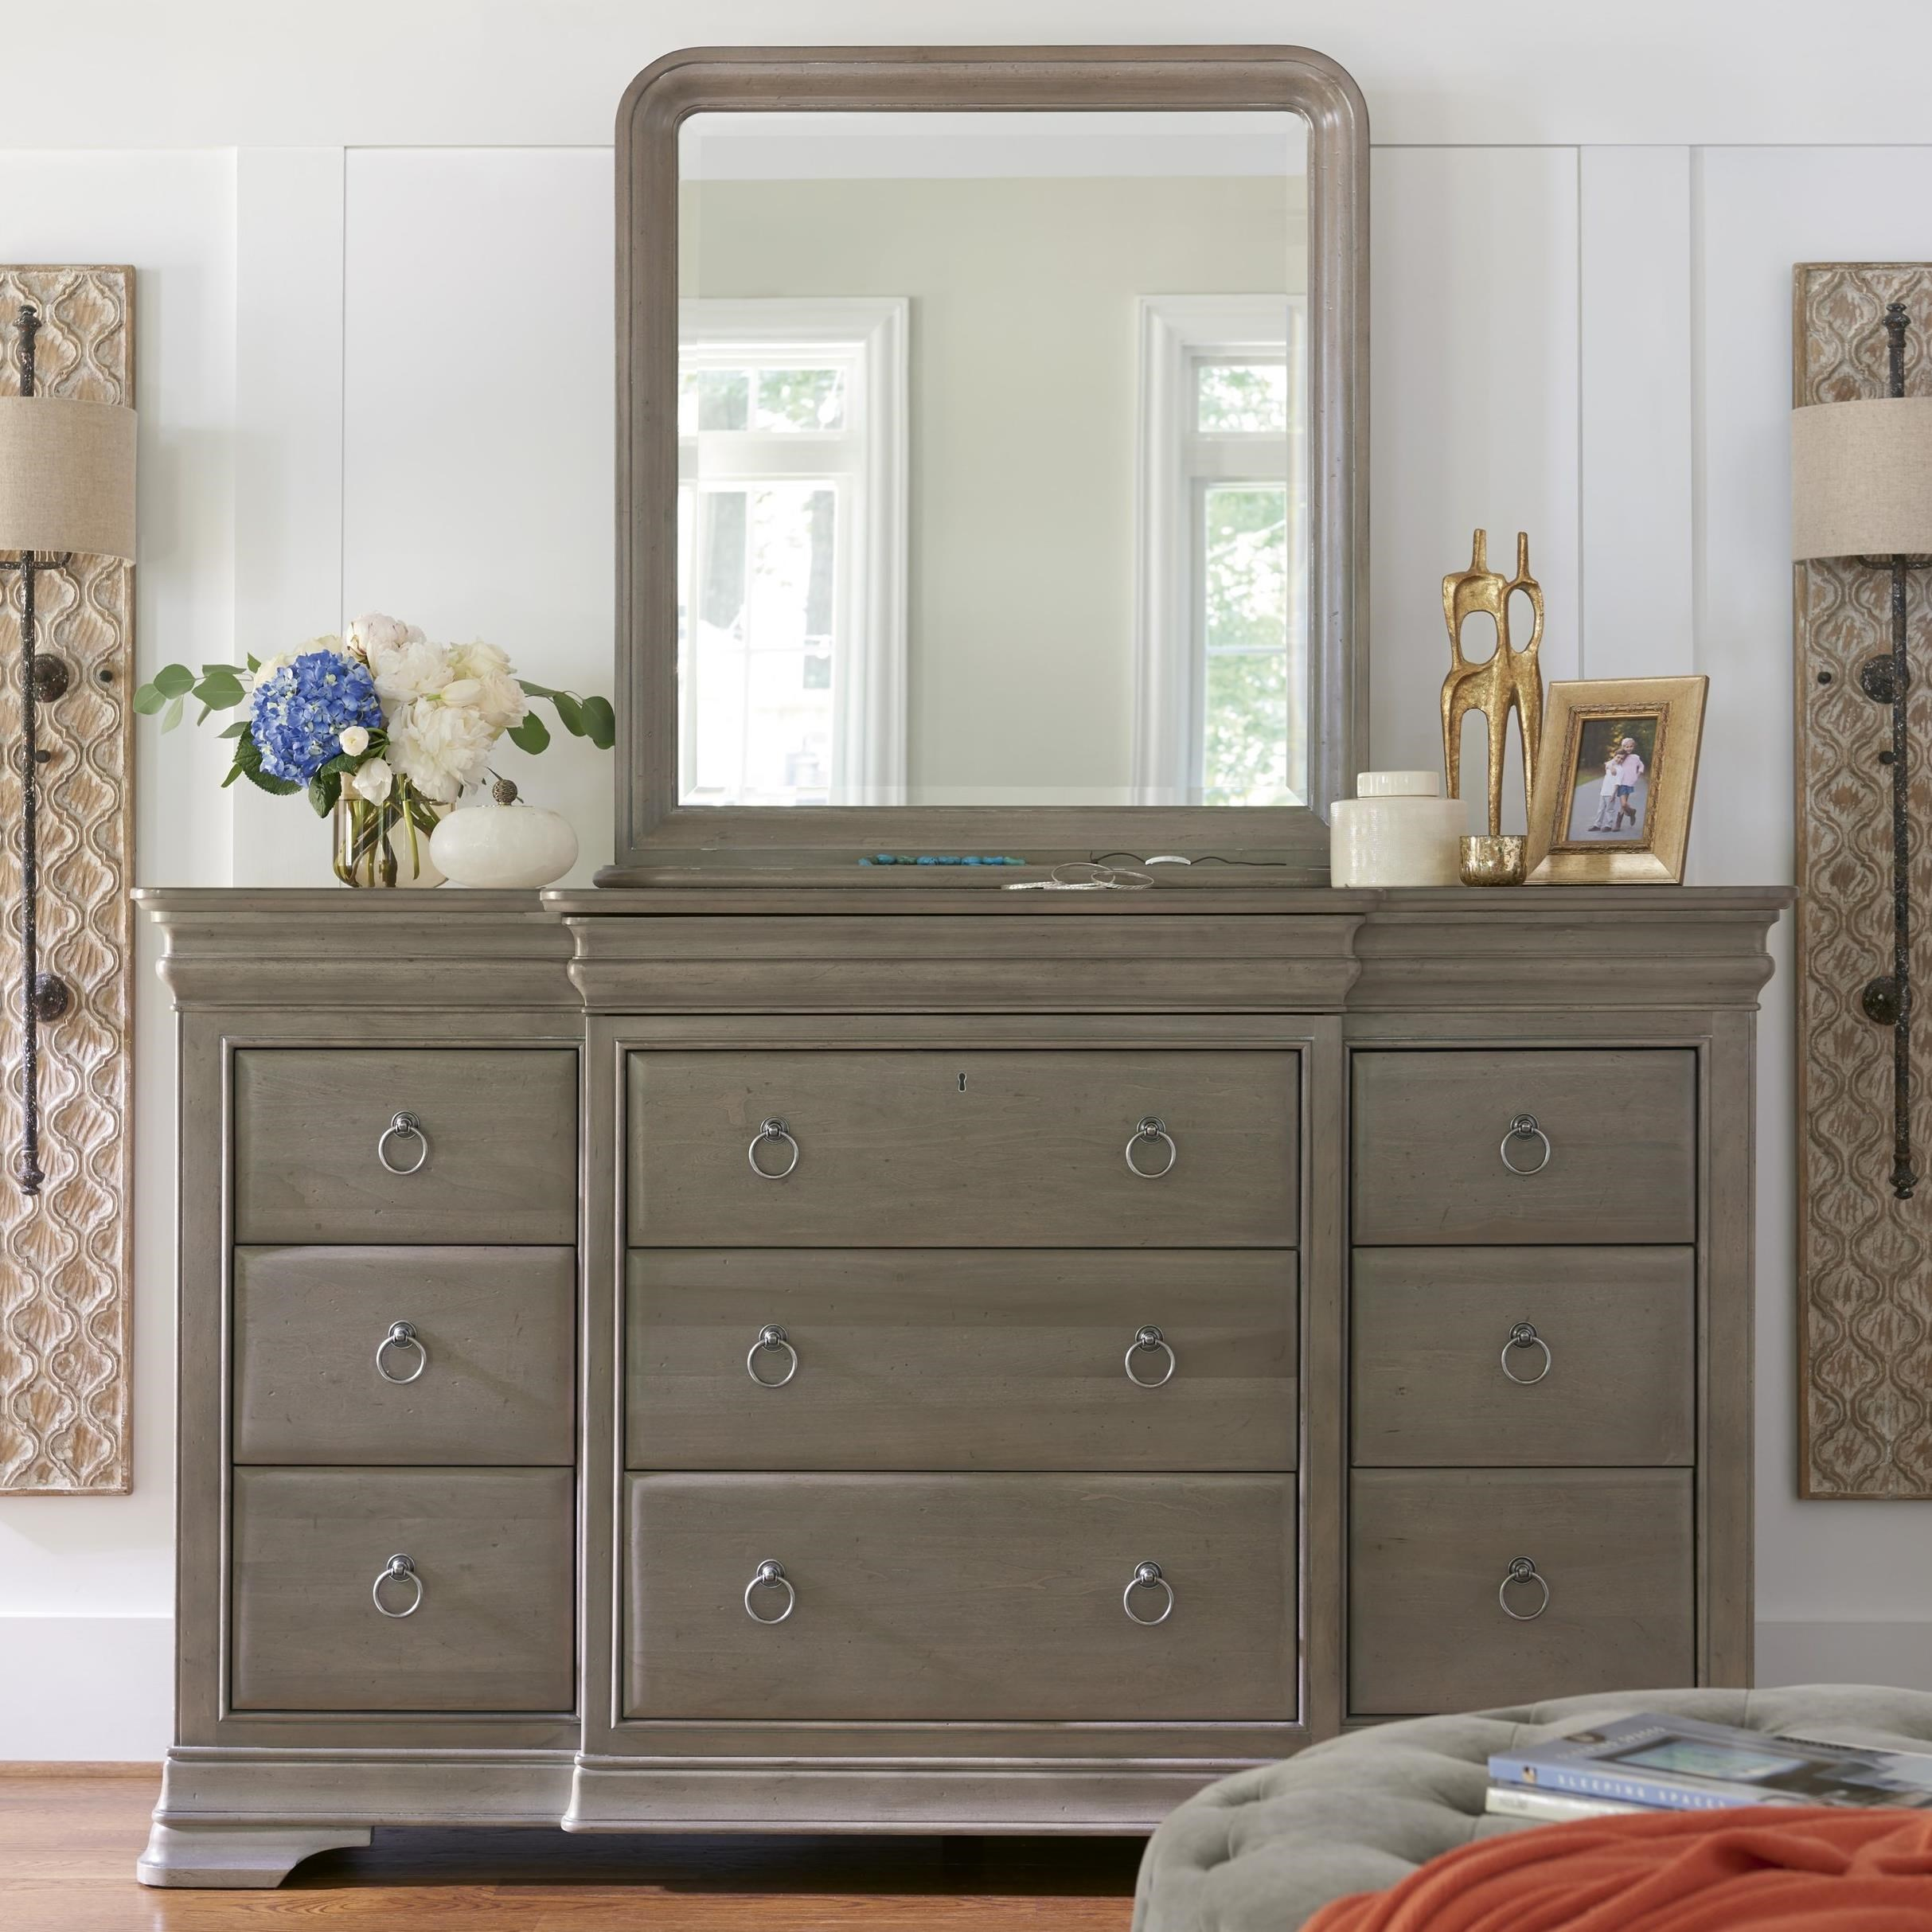 Reprise Dresser and Mirror by Universal at Baer's Furniture